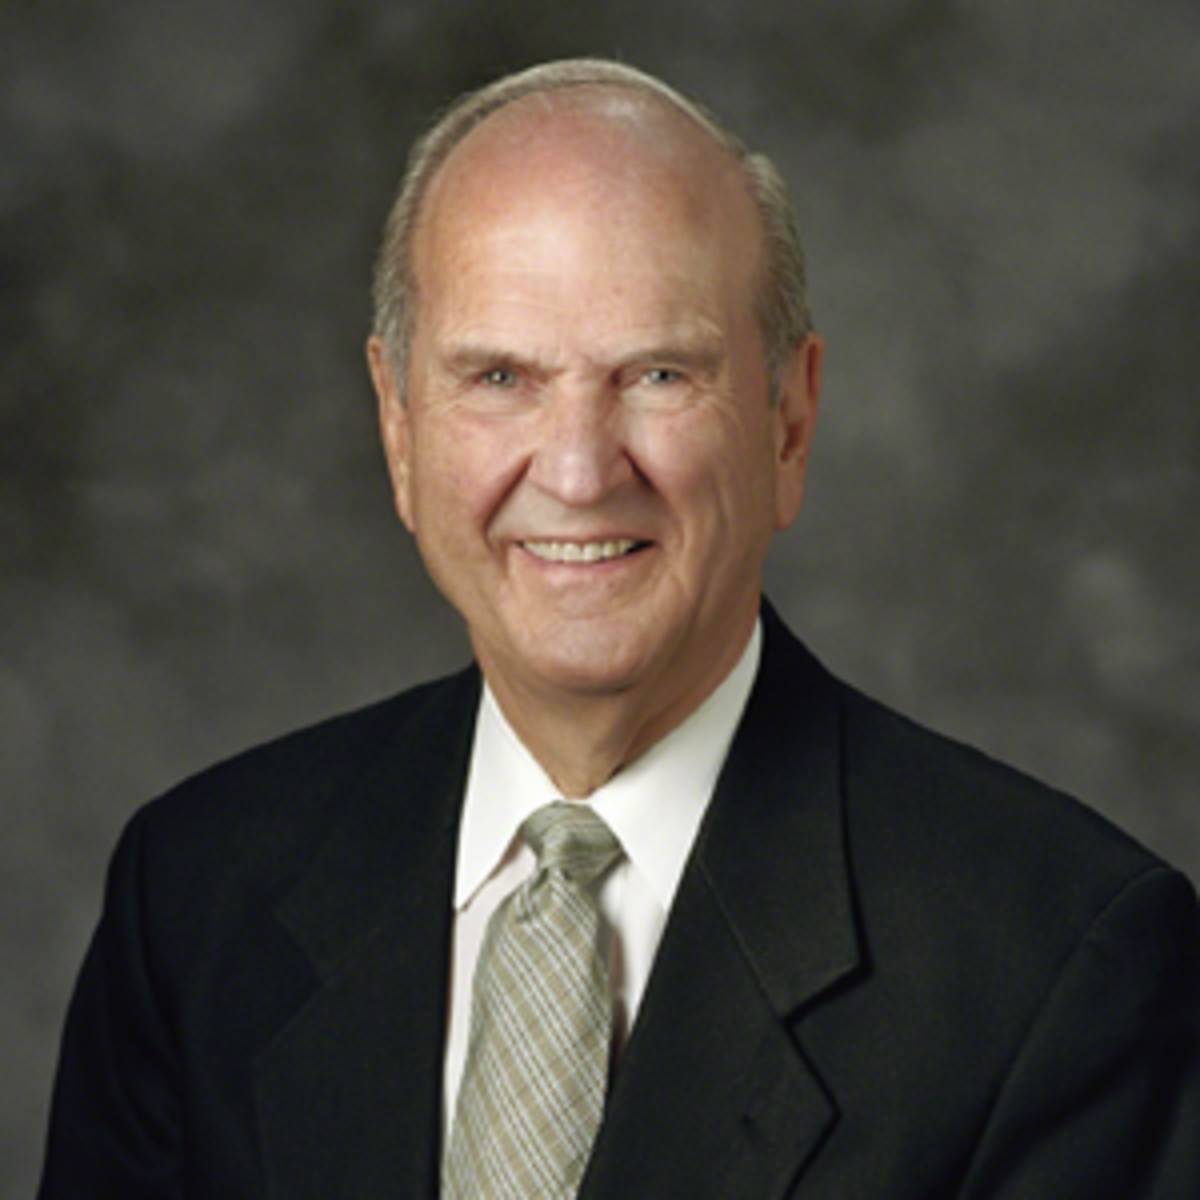 Russell M. Nelson, president of The Church of Jesus Christ Of Latter-day Saints